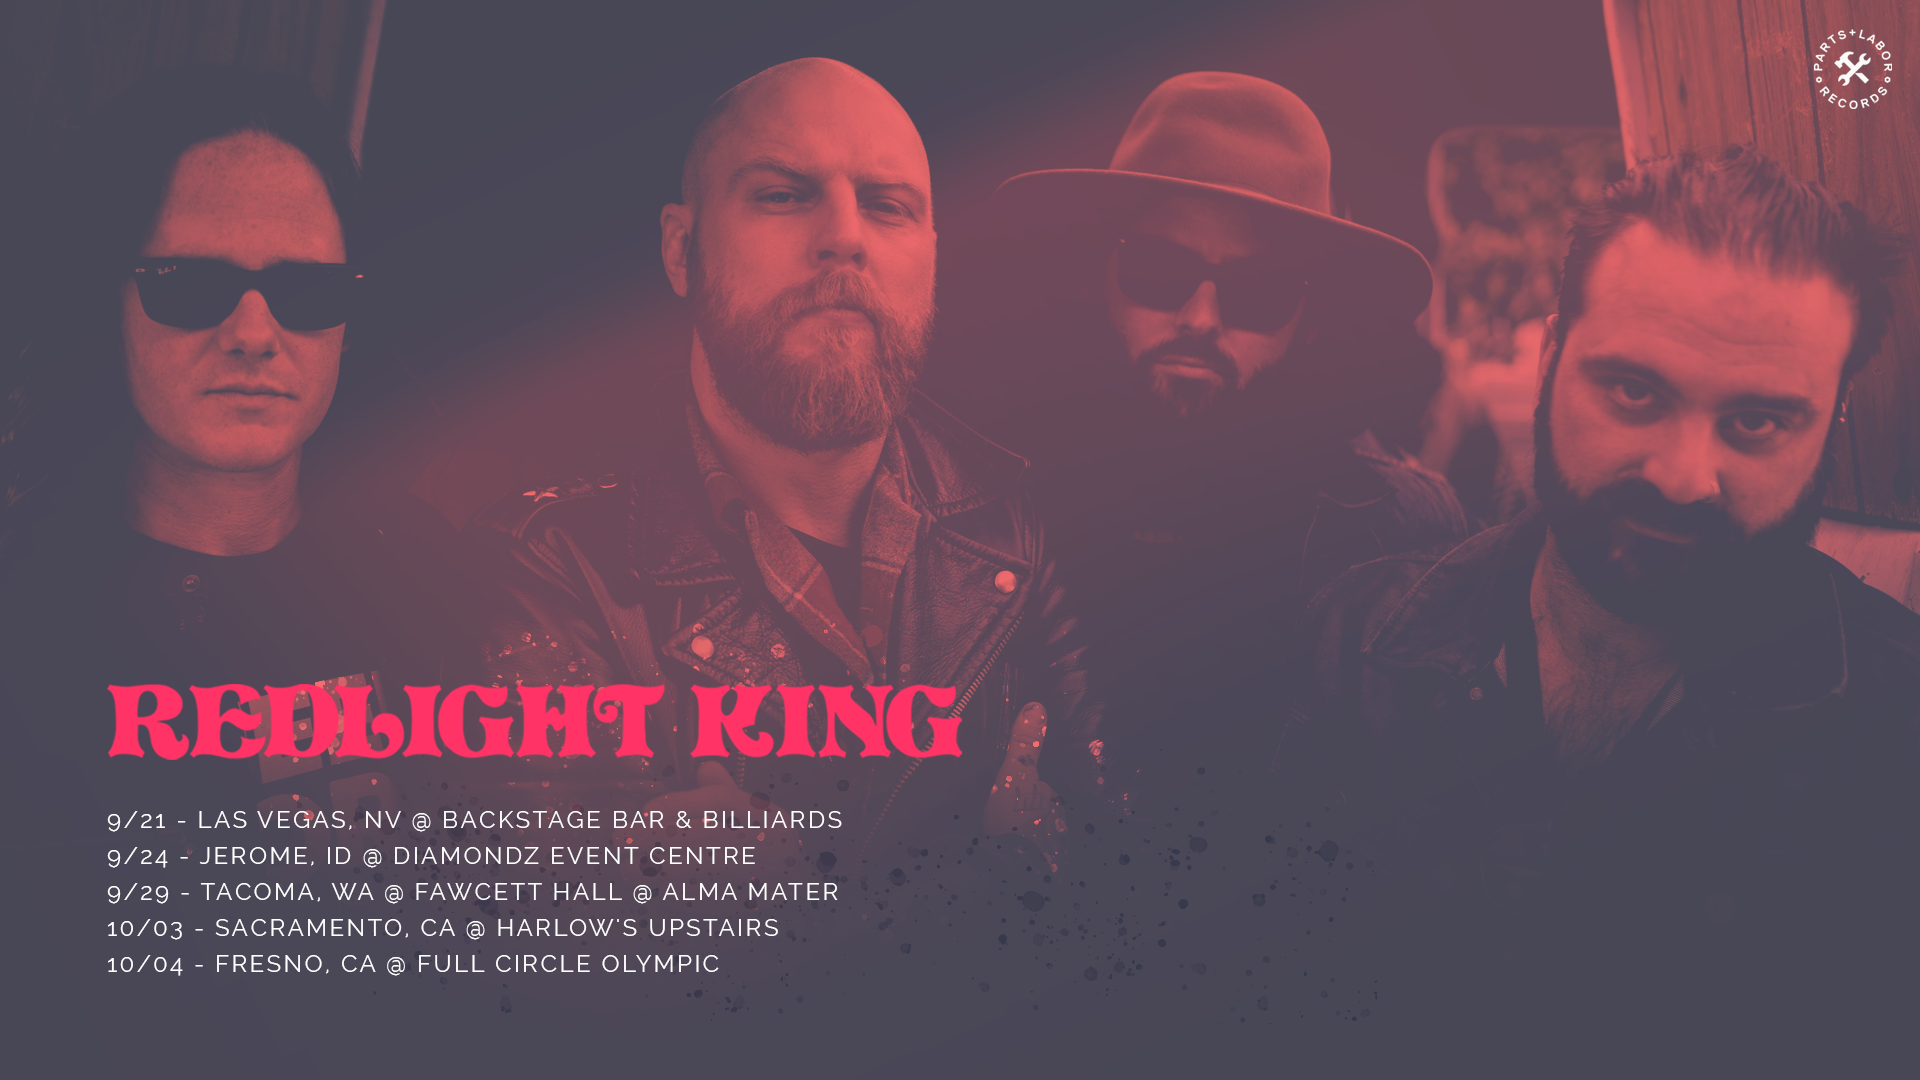 Redlight King - Tour Announcement - Fall2019 - 1920x1080 @2x.png